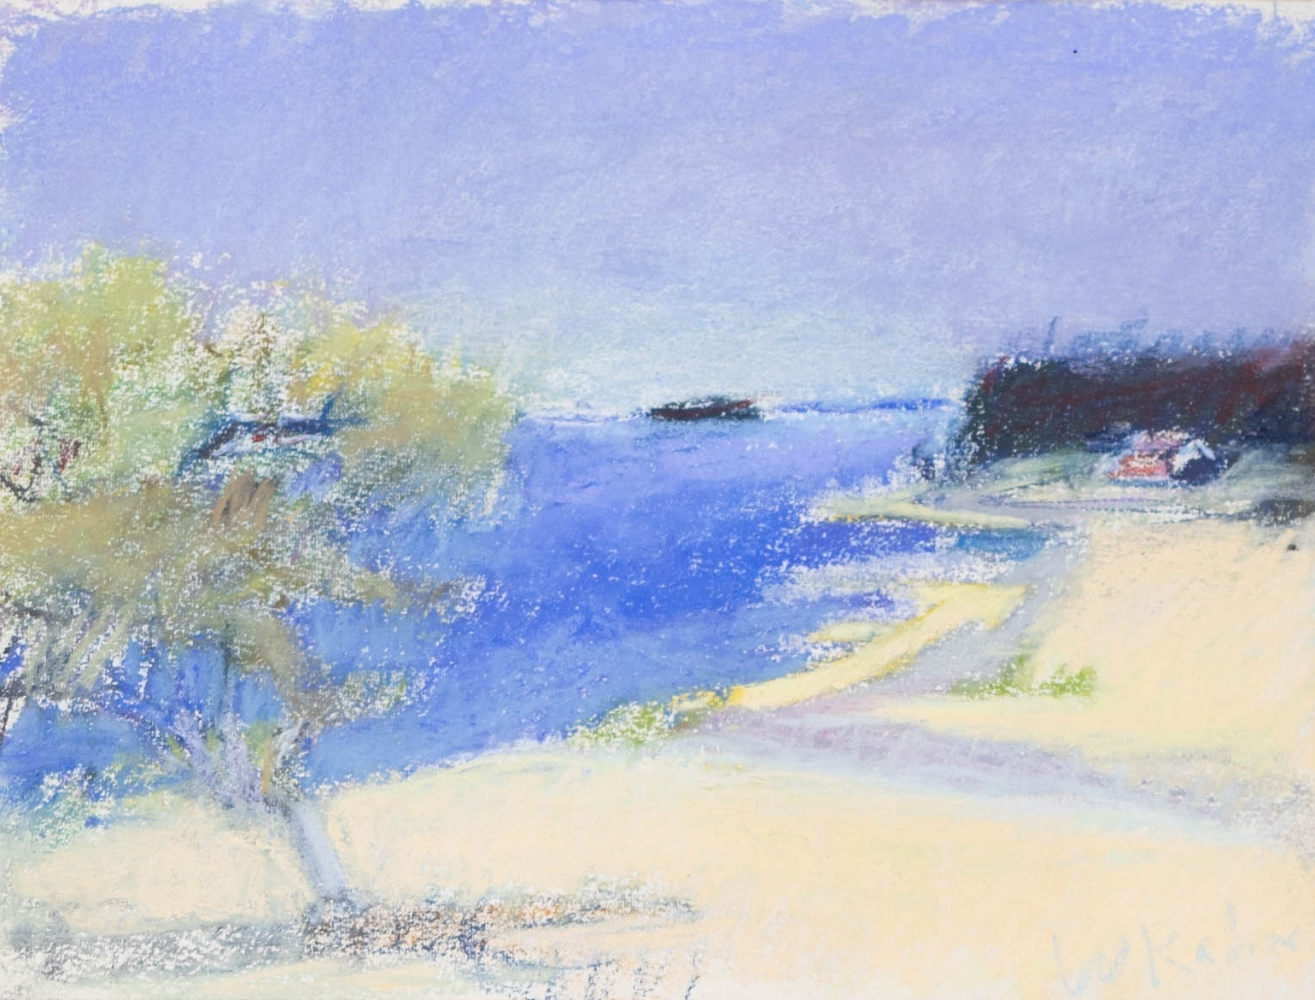 Wolf Kahn, Looking Southwest on Deer Isle, 1967, Pastel on paper, 9 x 12 inches, Wolf Kahn Pastels for sale, Wolf Kahn Landscape, Wolf Kahn Pastels